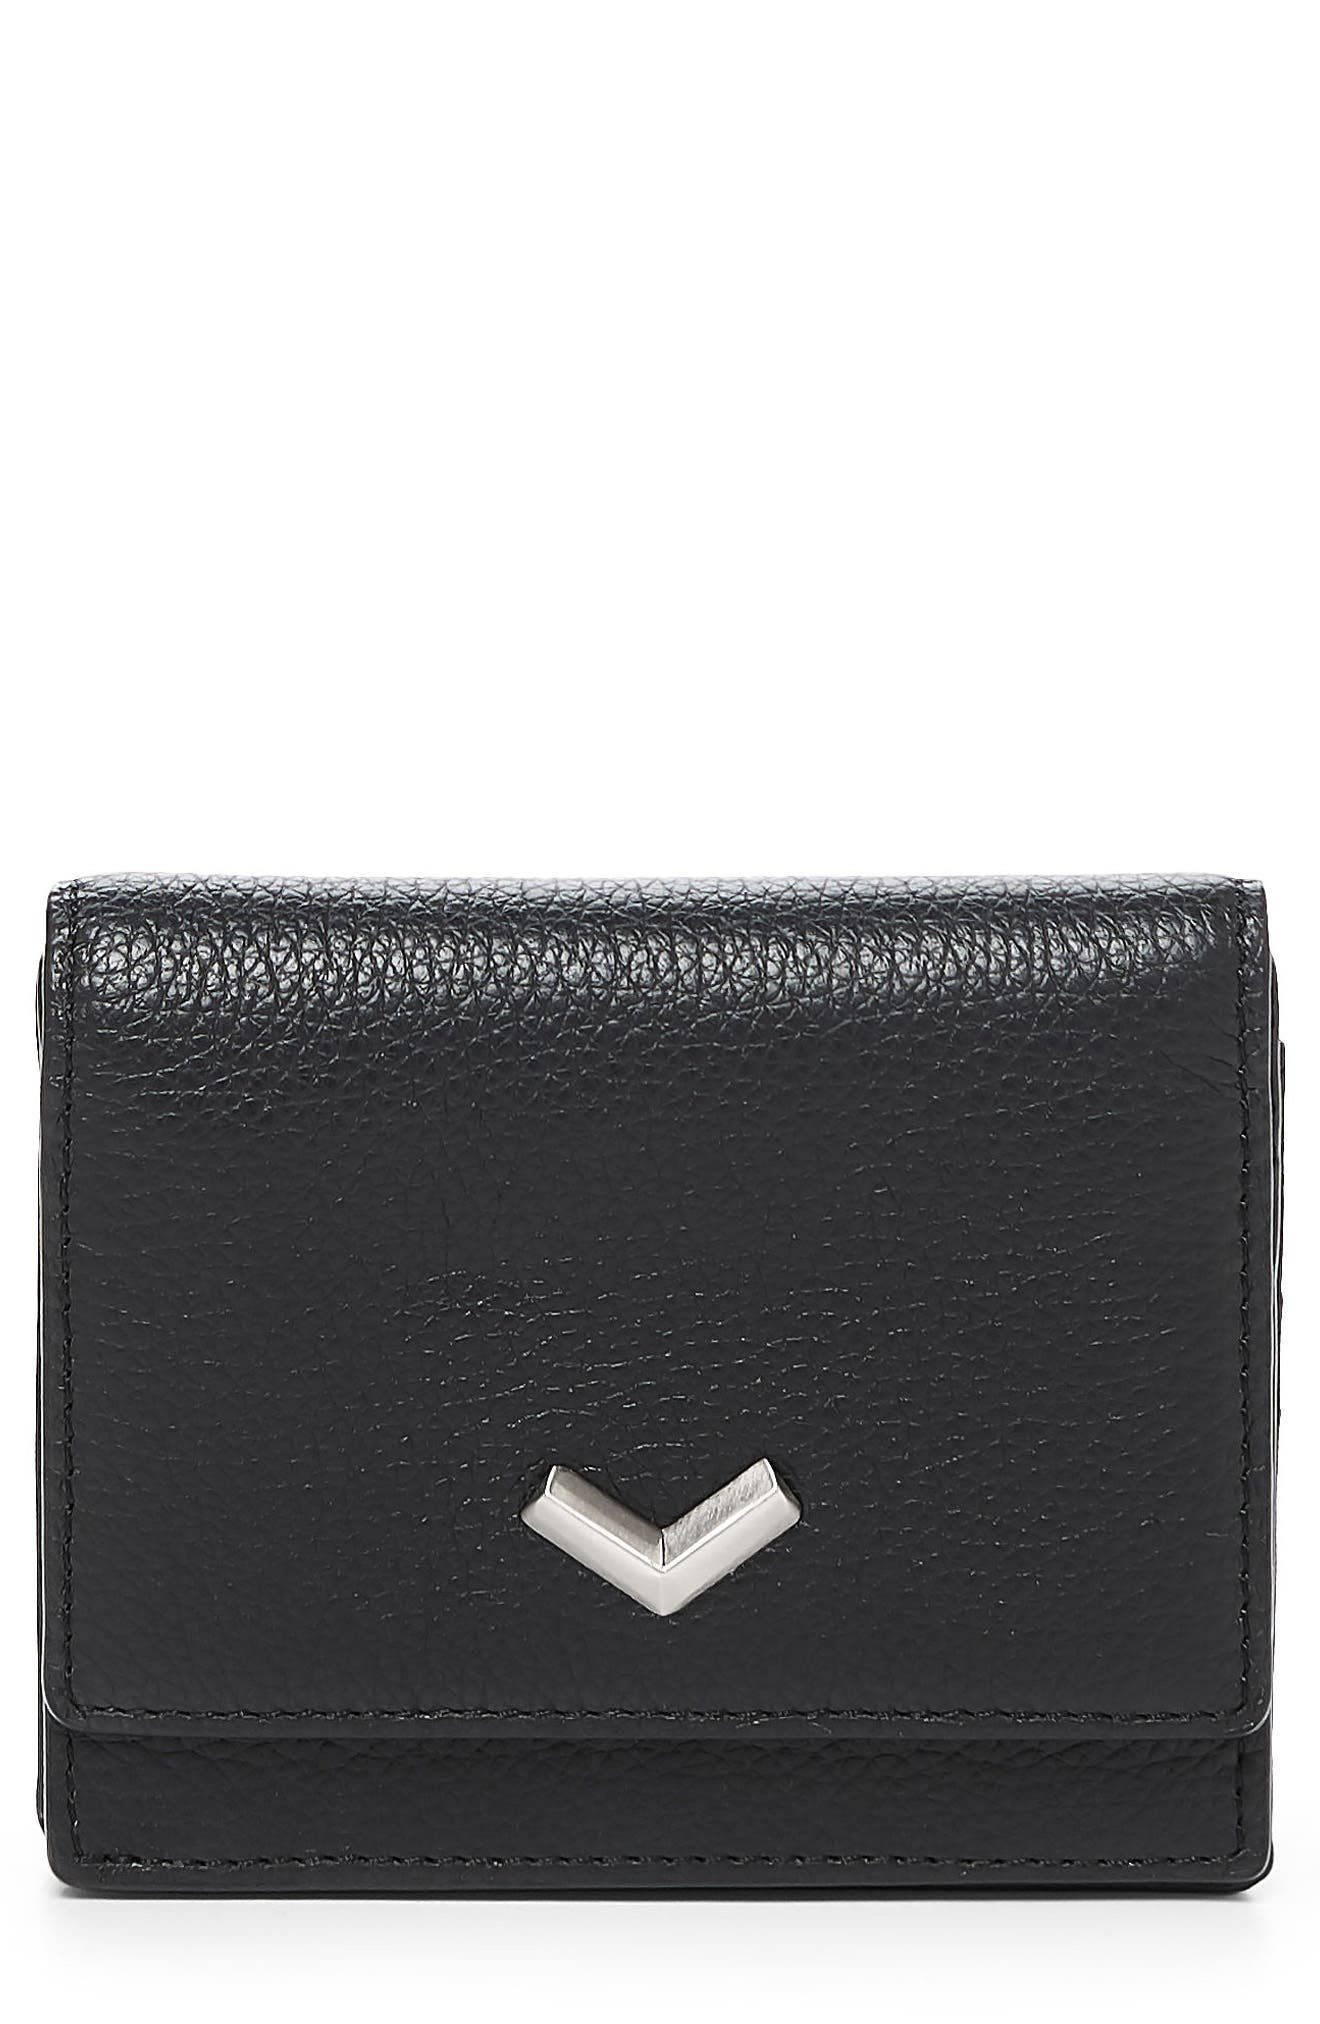 Soho Mini Leather Wallet,                         Main,                         color,